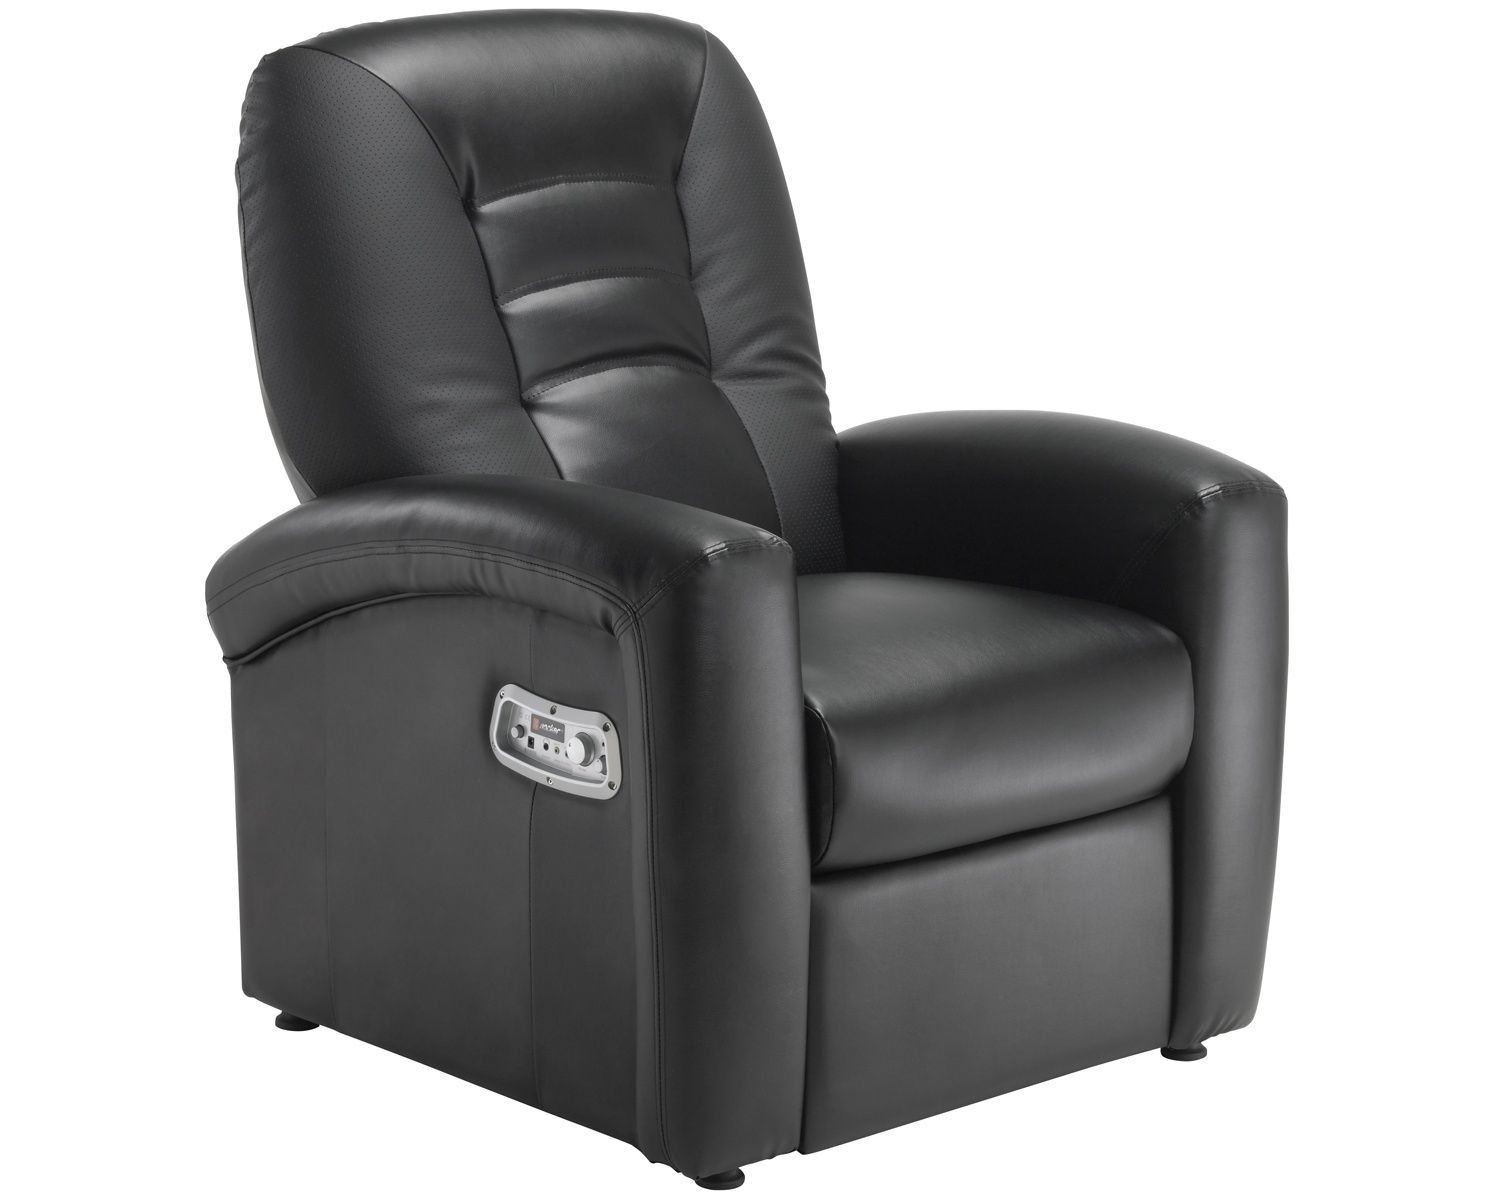 dxracer chair cover argos uk covers cheap game chairs with speakers gaming pinterest